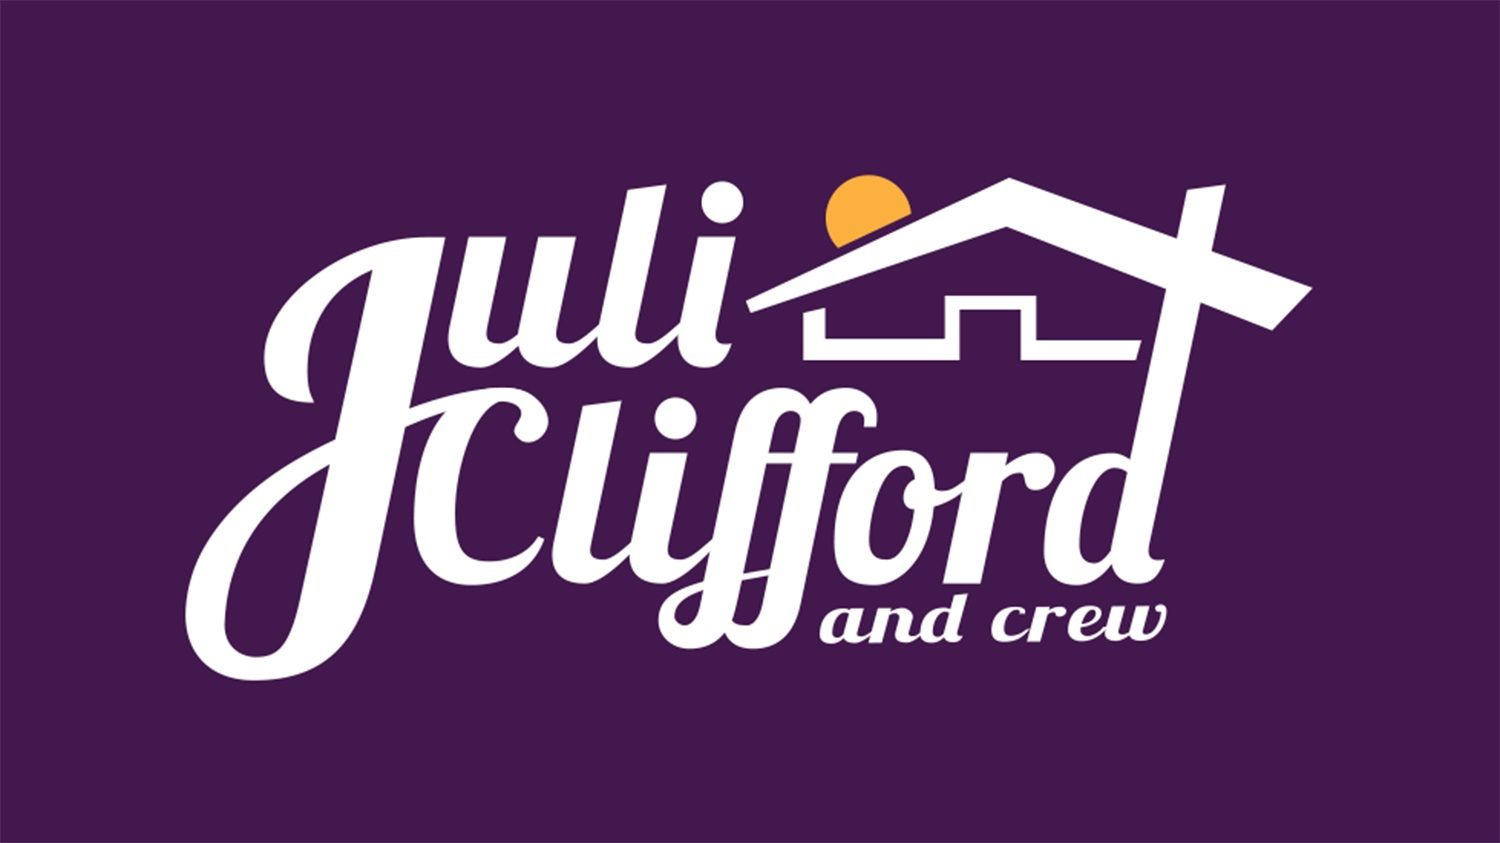 Juli Clifford And Crew